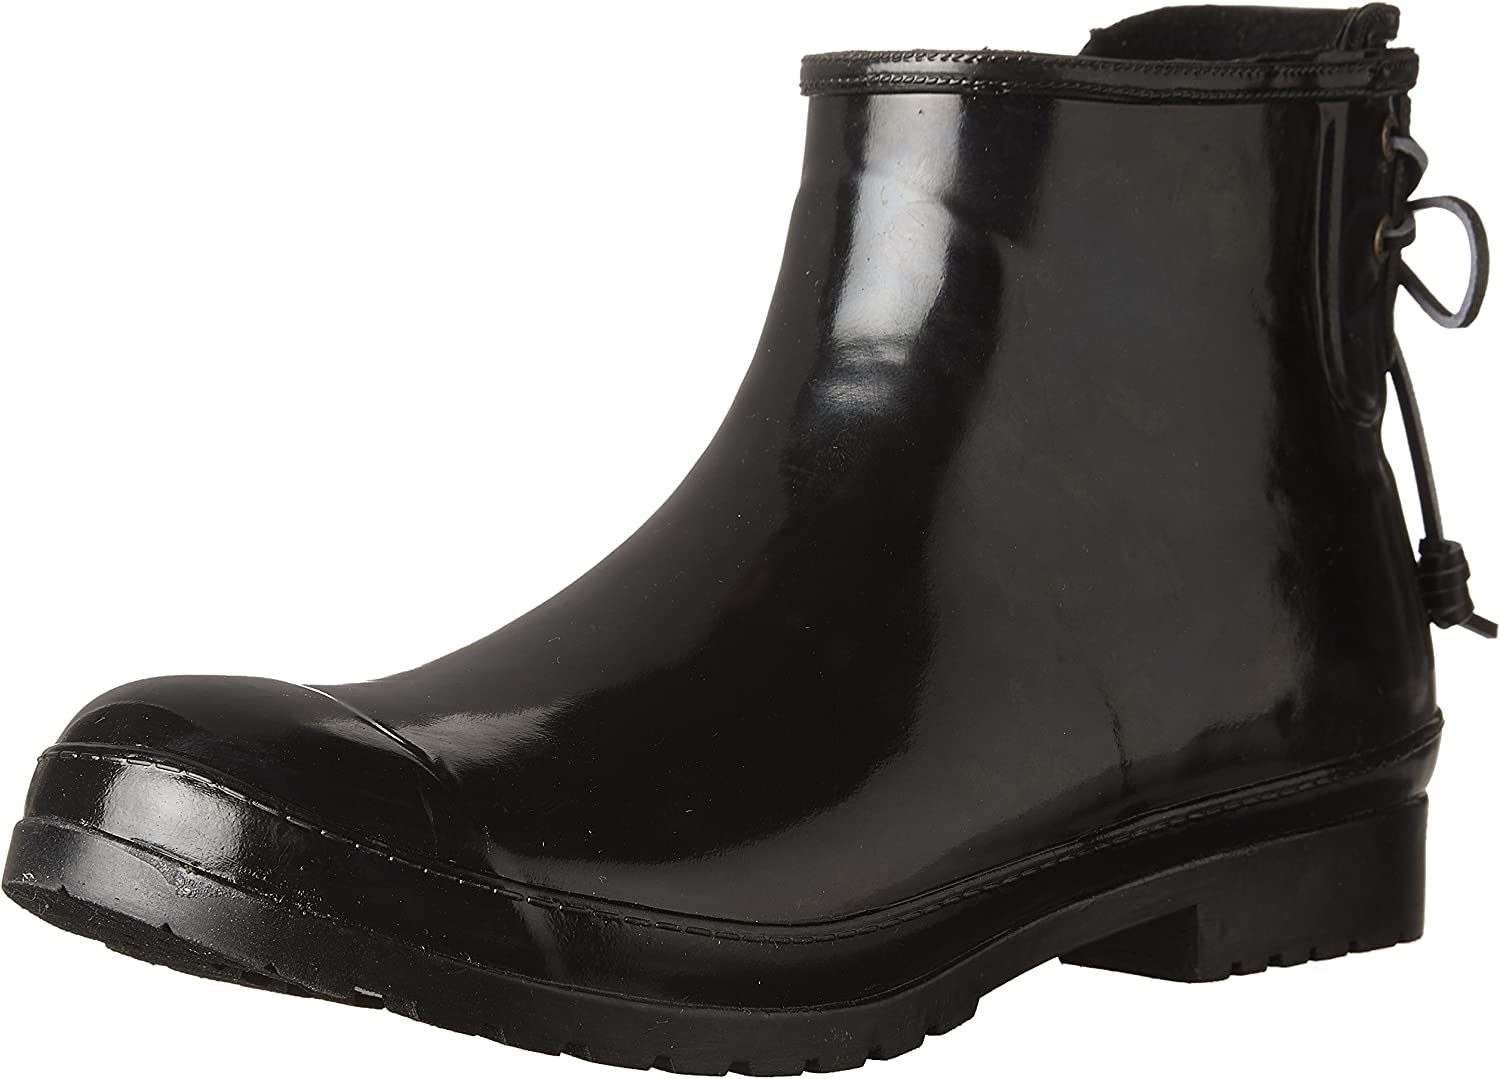 Sperry Women's Walker Turf Rain Boots